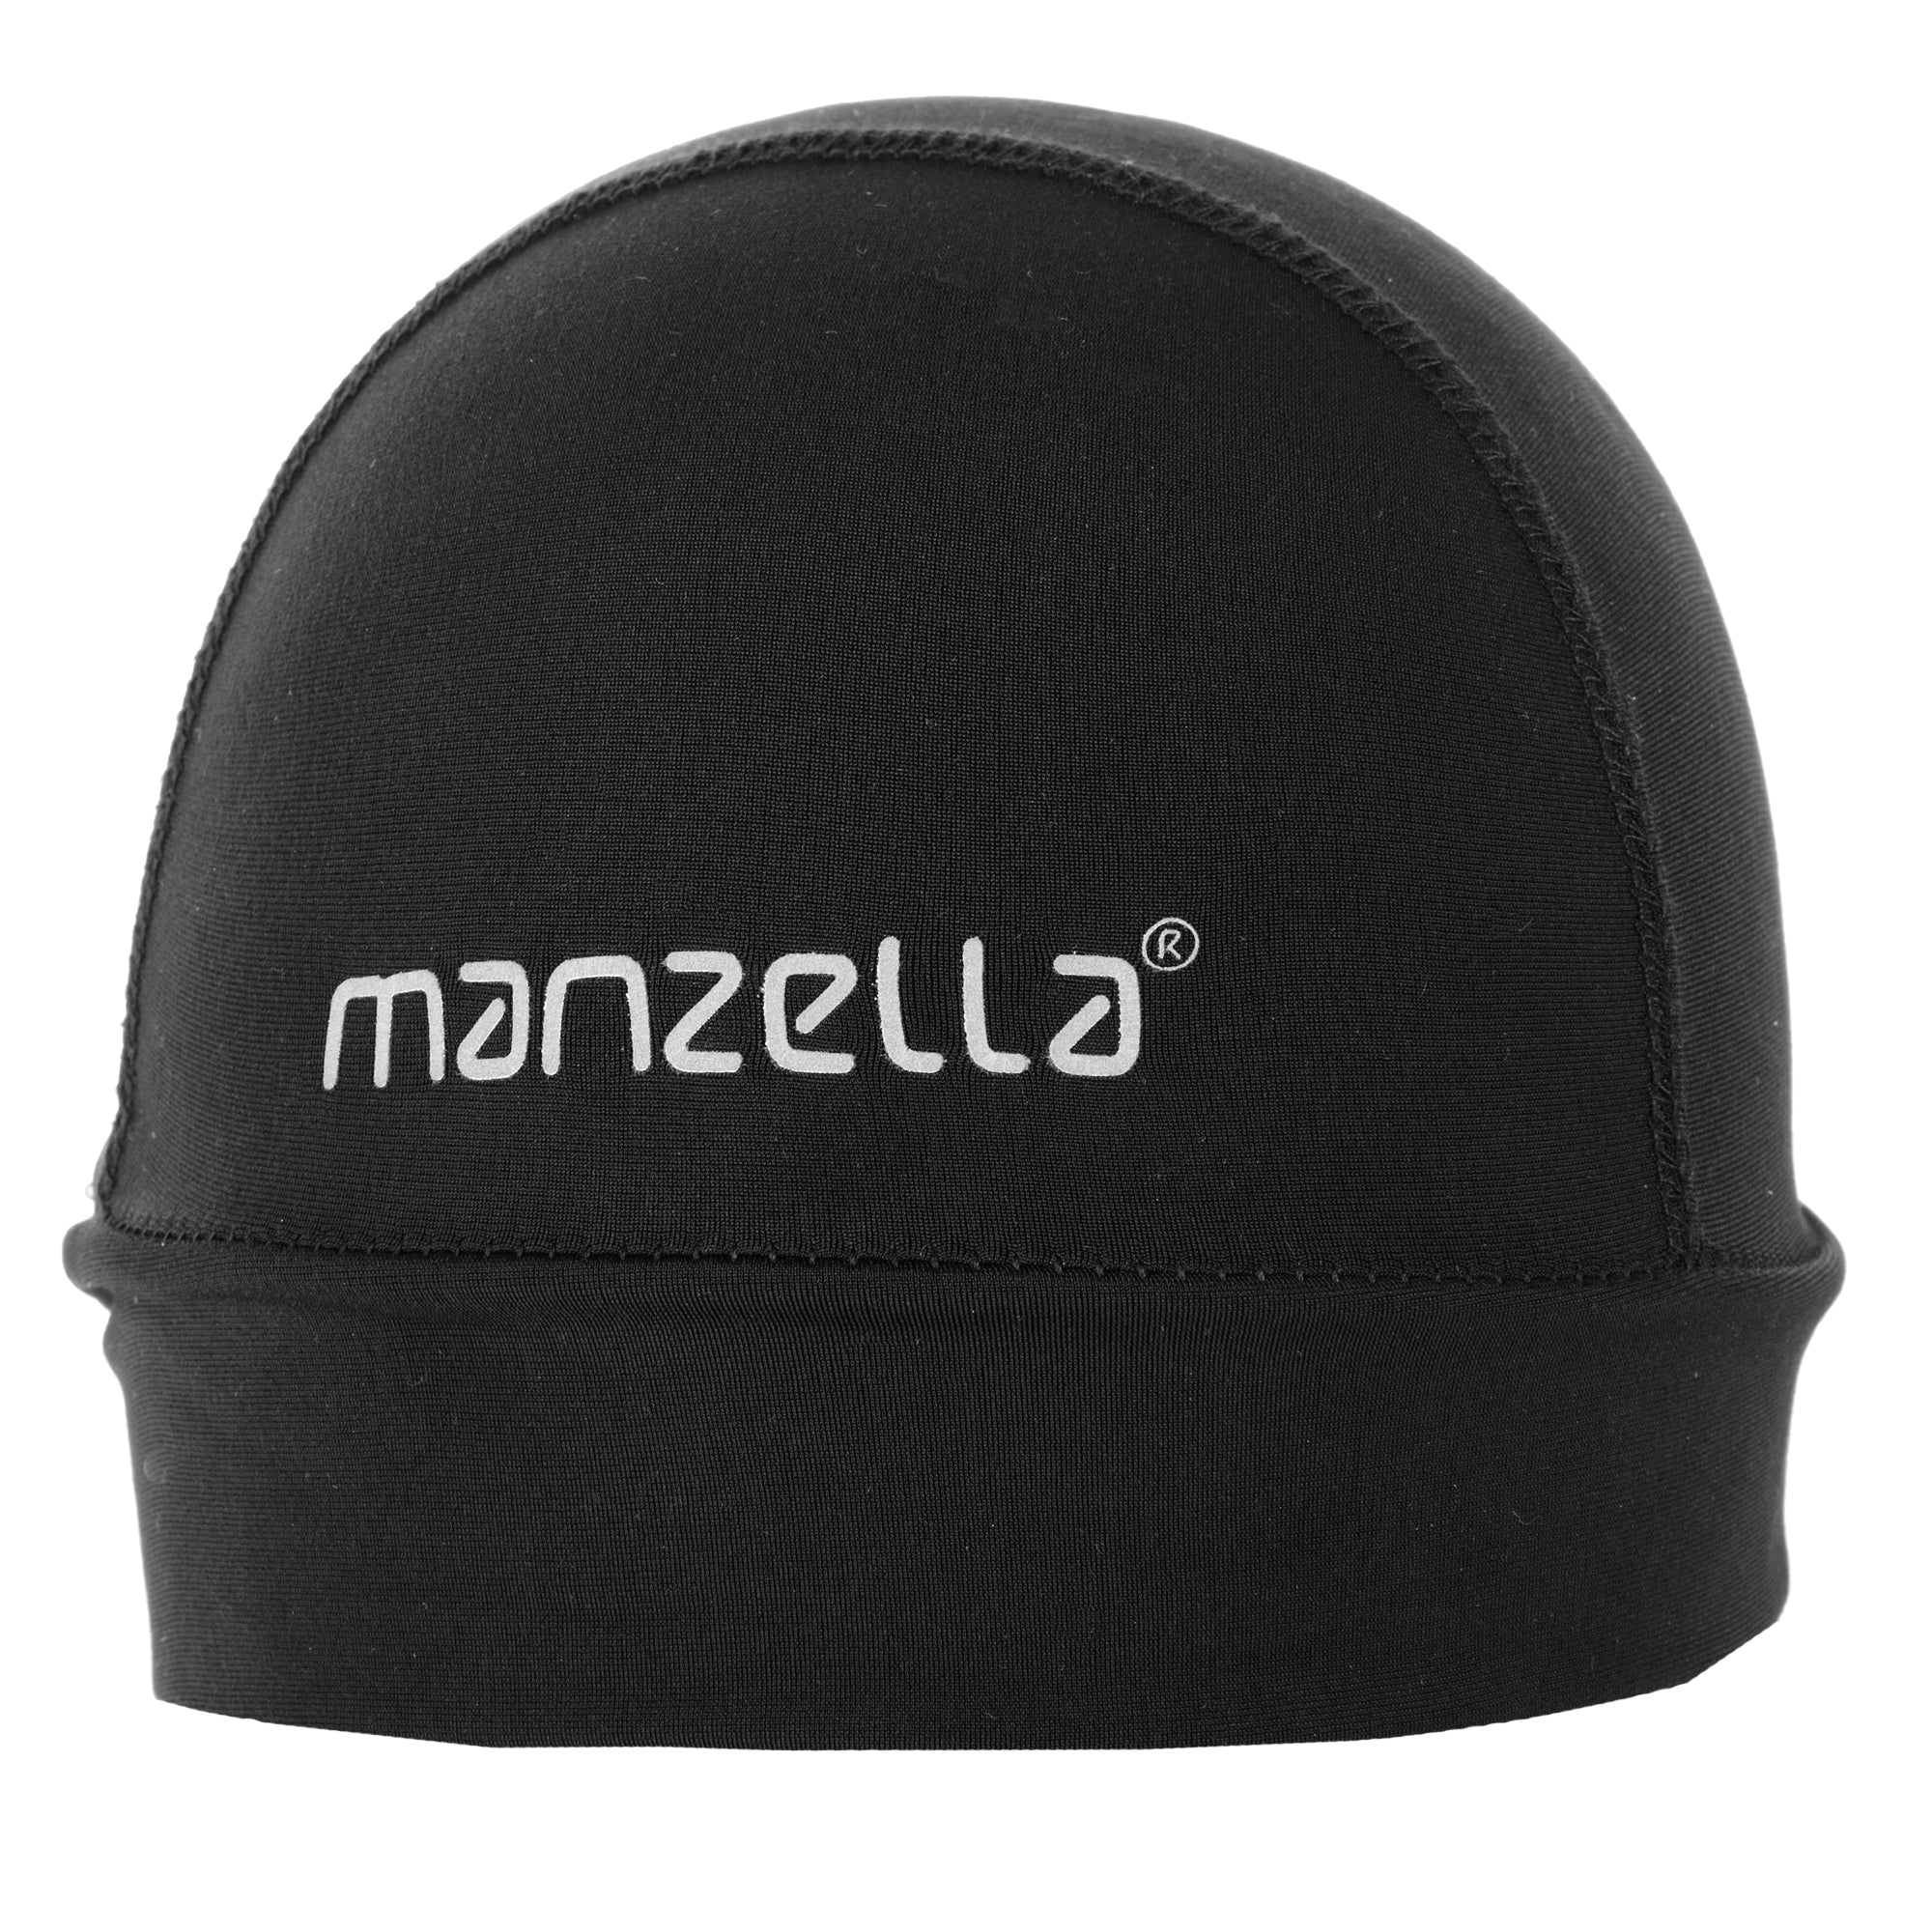 Manzella VAPOR Hat for Women